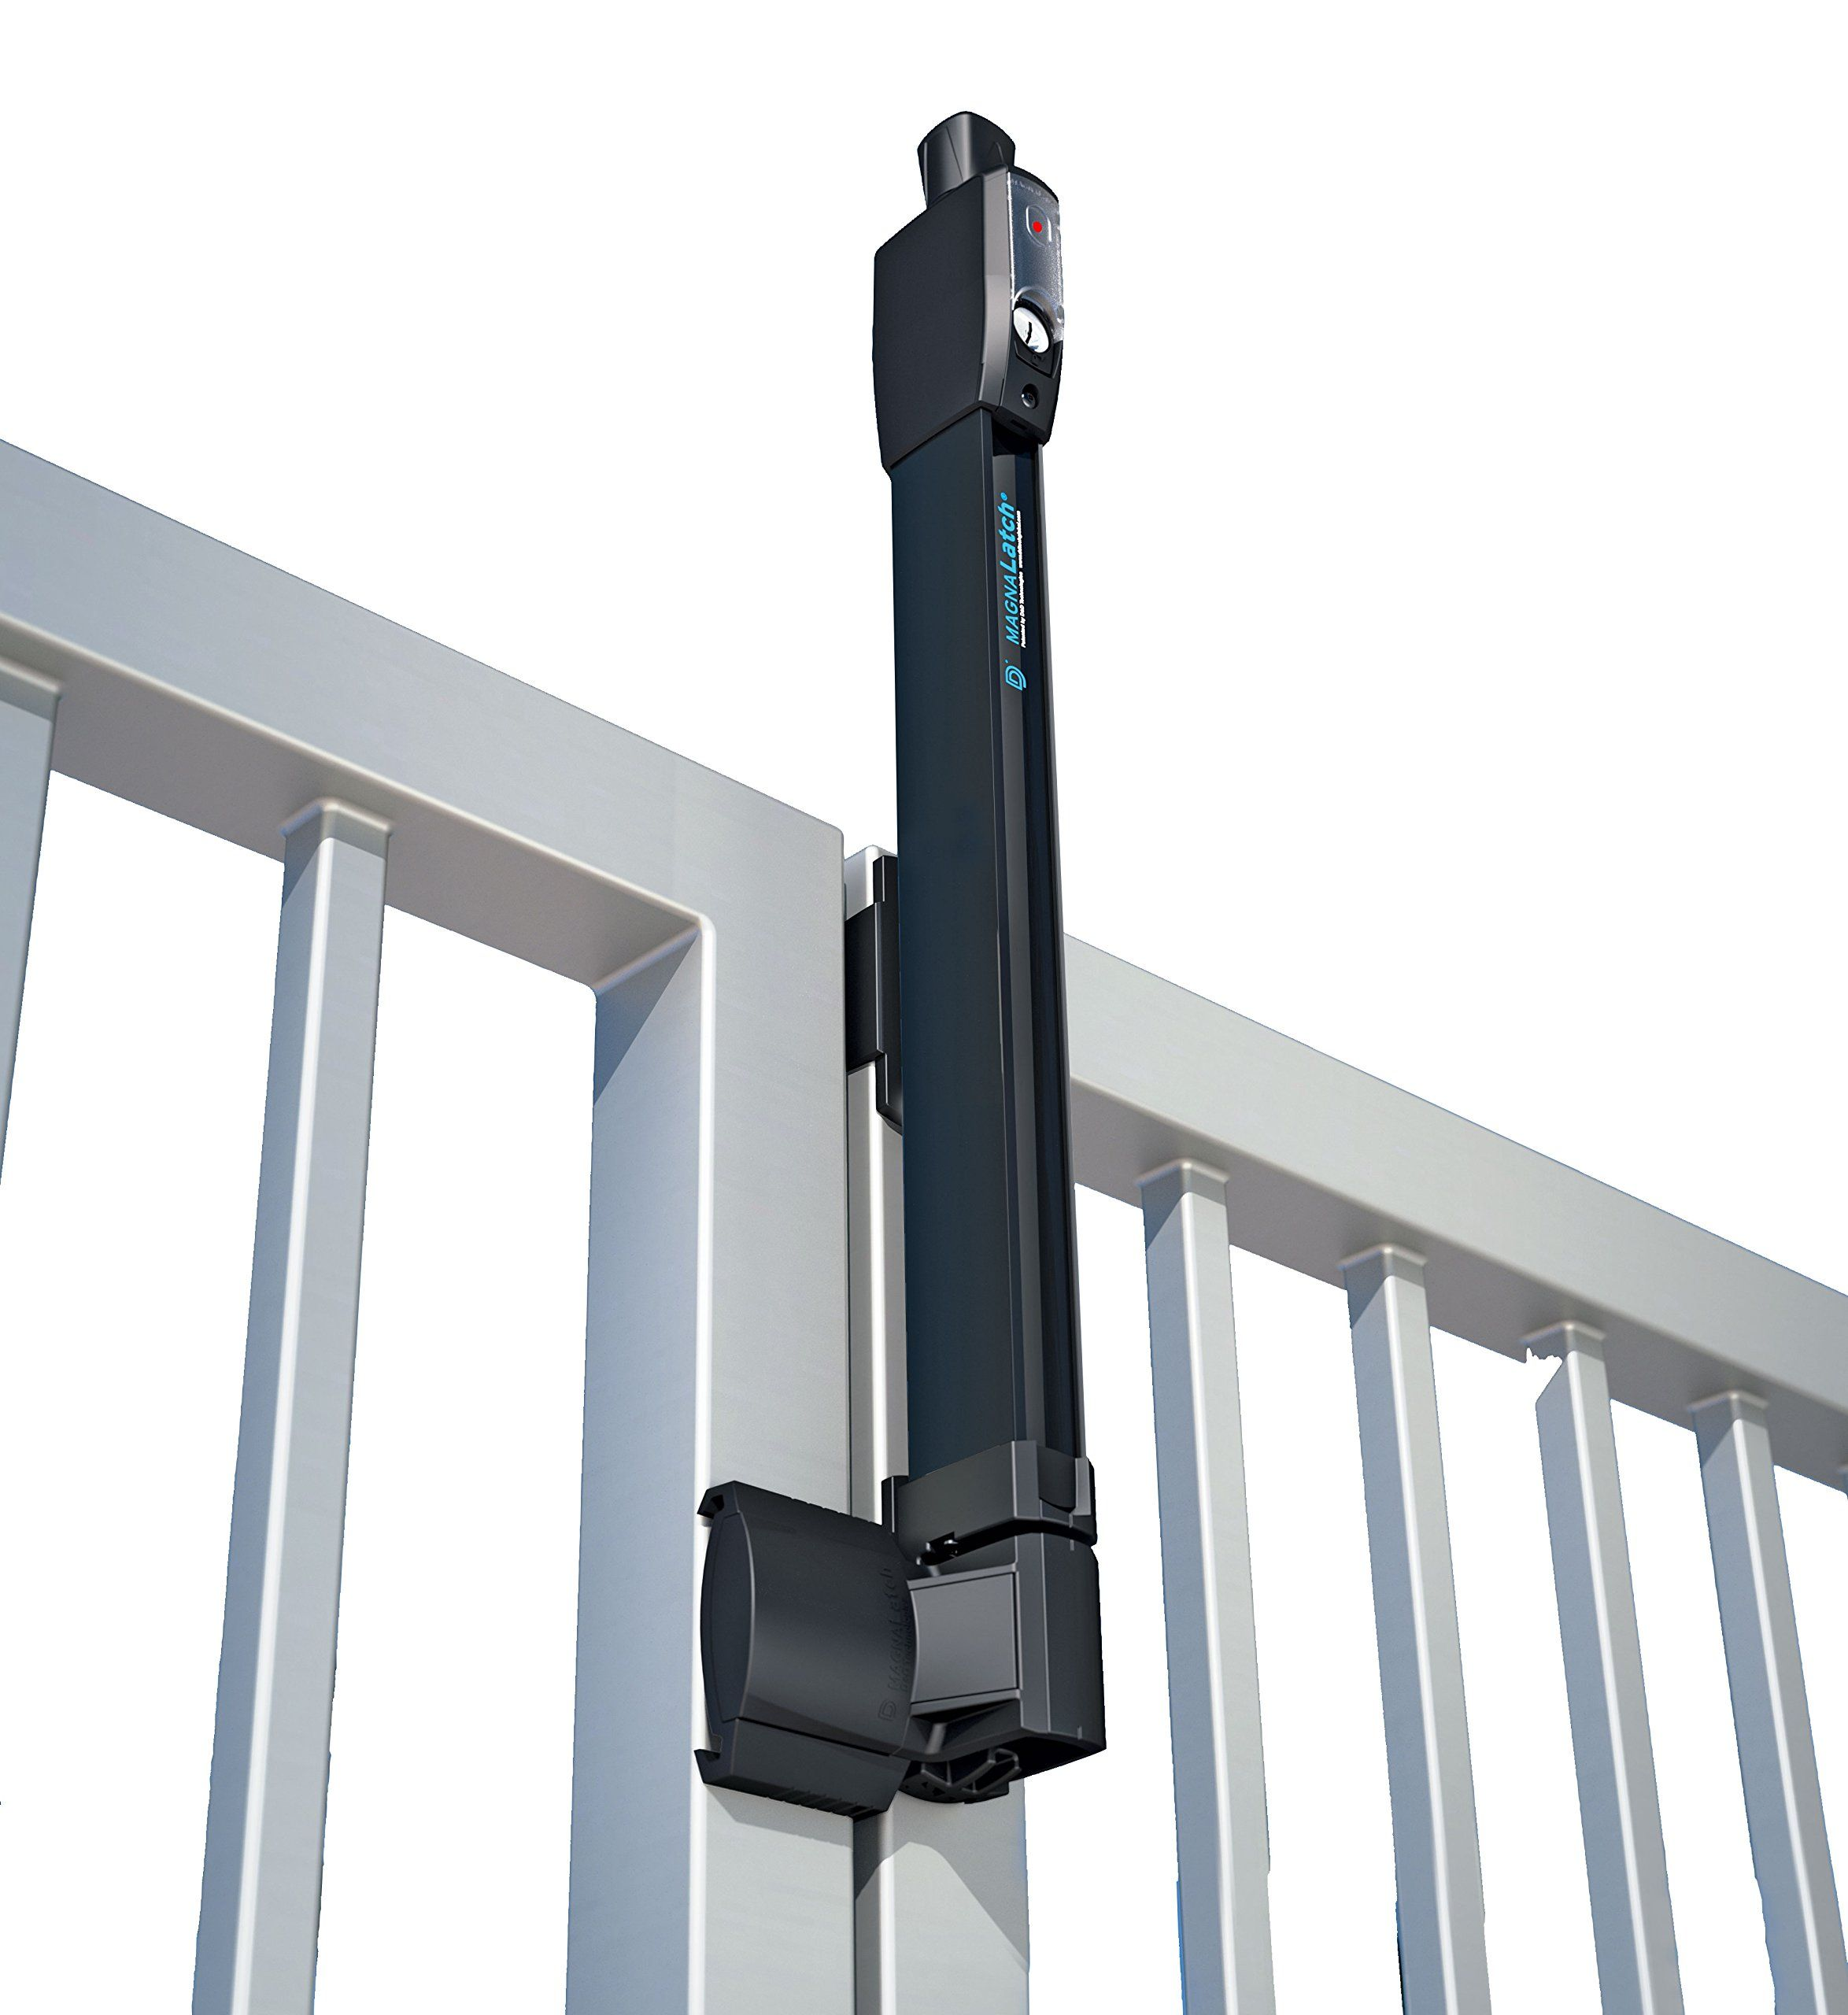 Magnalatch Series 3 Magnetic Pool Child Safety Gate Latch